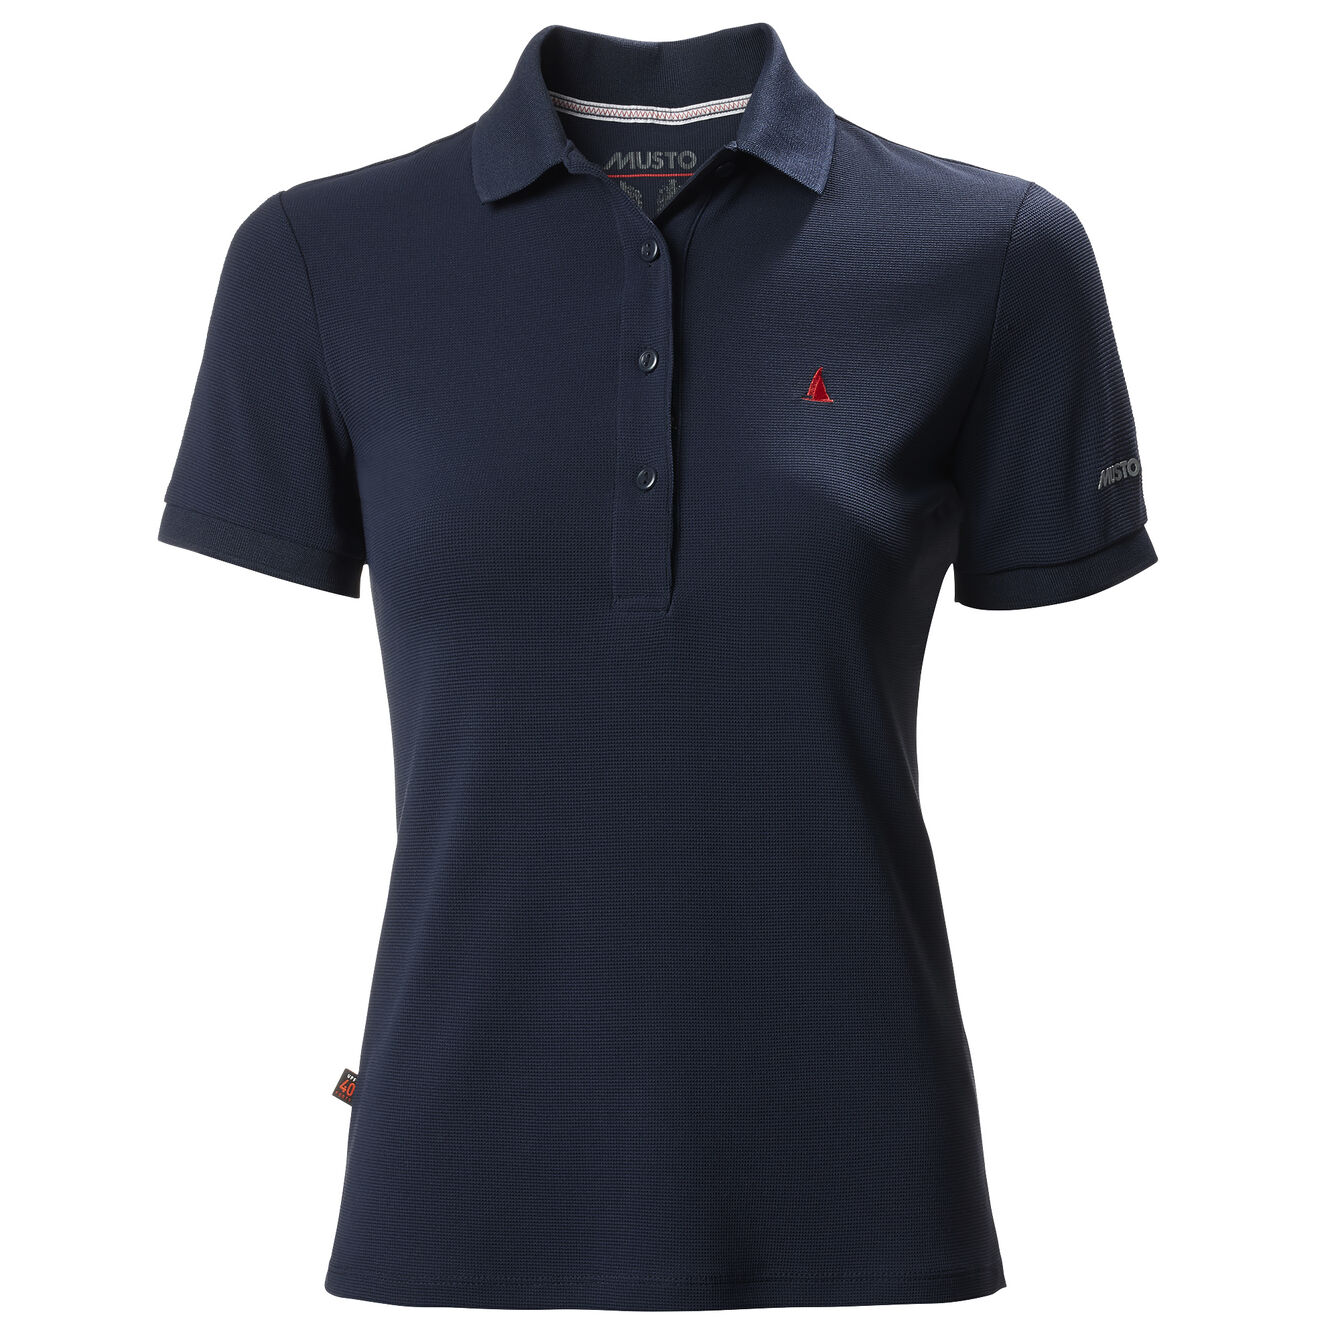 EVO PRO LITE PLAIN SHORT SLEEVE POLO FOR WOMEN